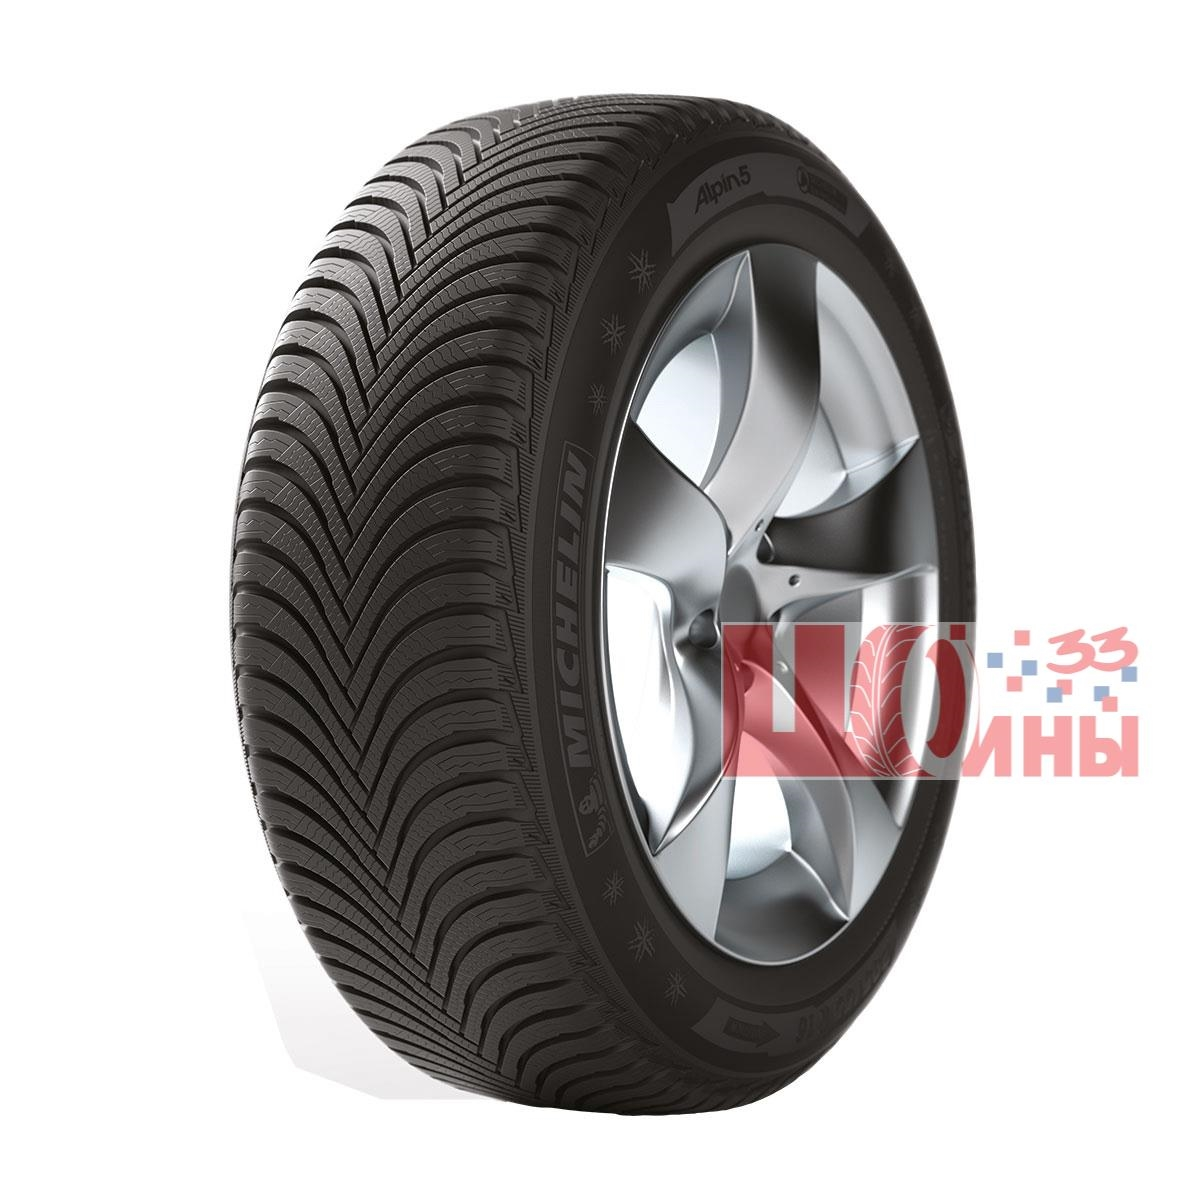 Б/У 225/50 R17 Зима MICHELIN Alpin A-5 Кат. 4